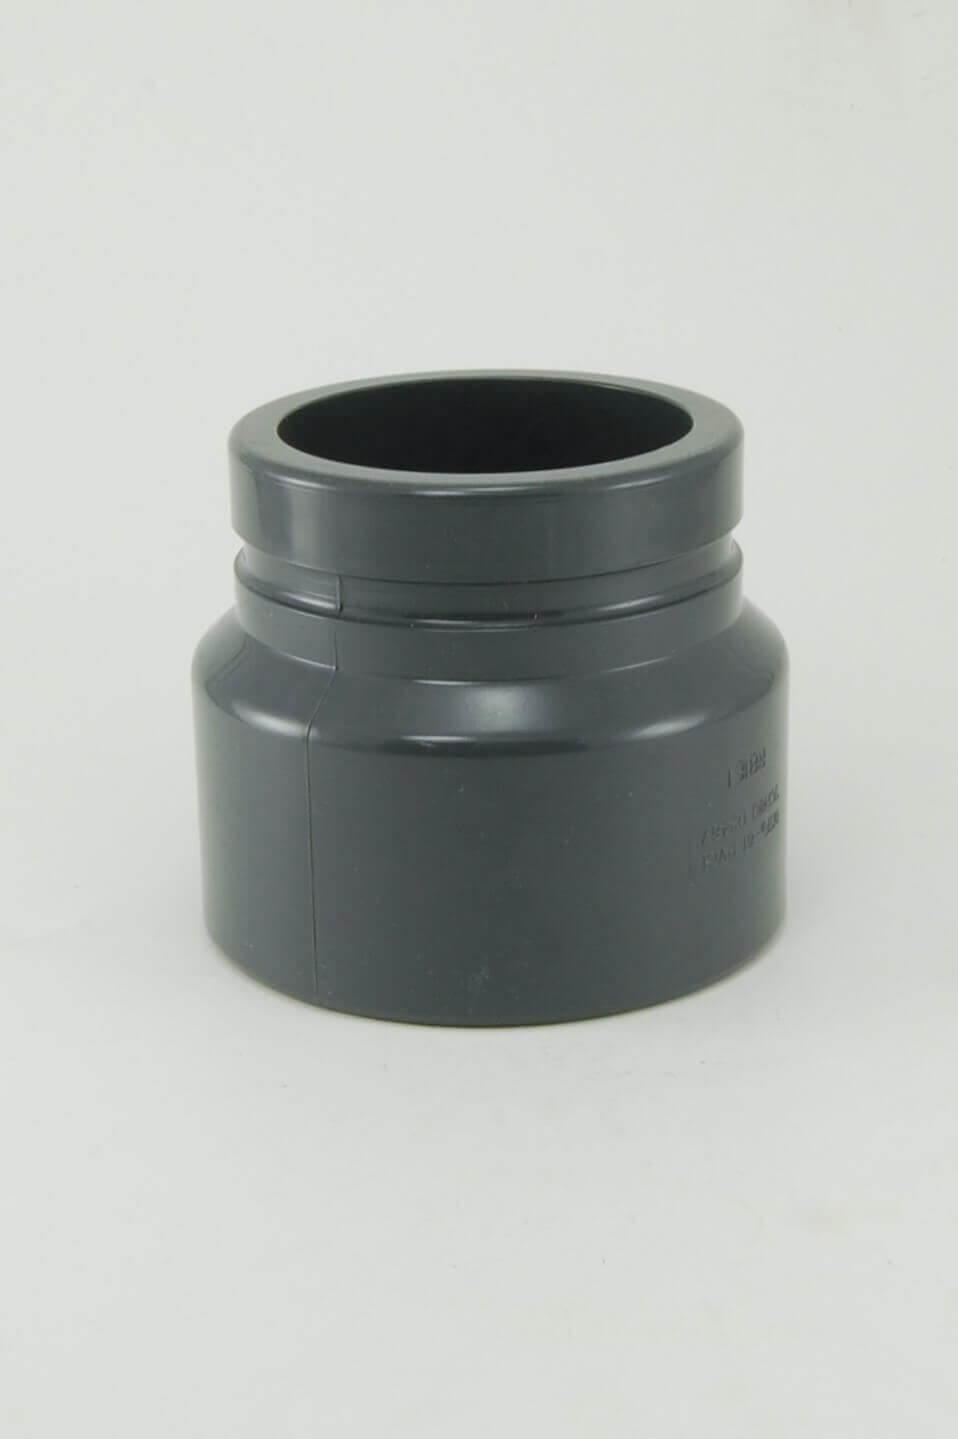 Sch grey pvc coupling grooved s grv schedule